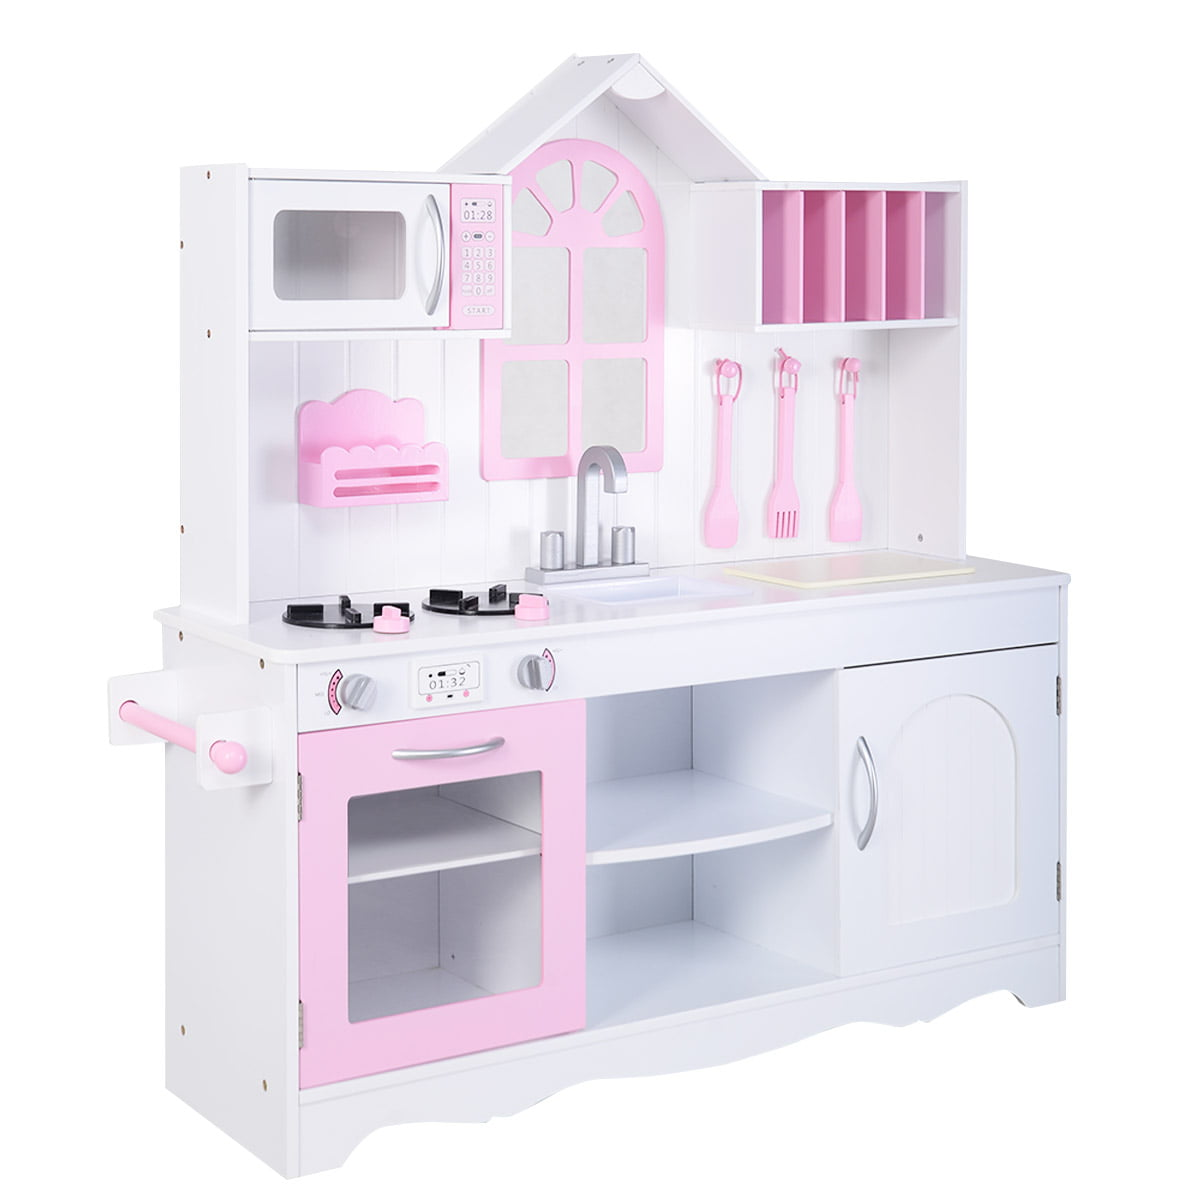 Lovely Costway Kids Wood Kitchen Toy Cooking Pretend Play Set Toddler Wooden  Playset   Walmart.com